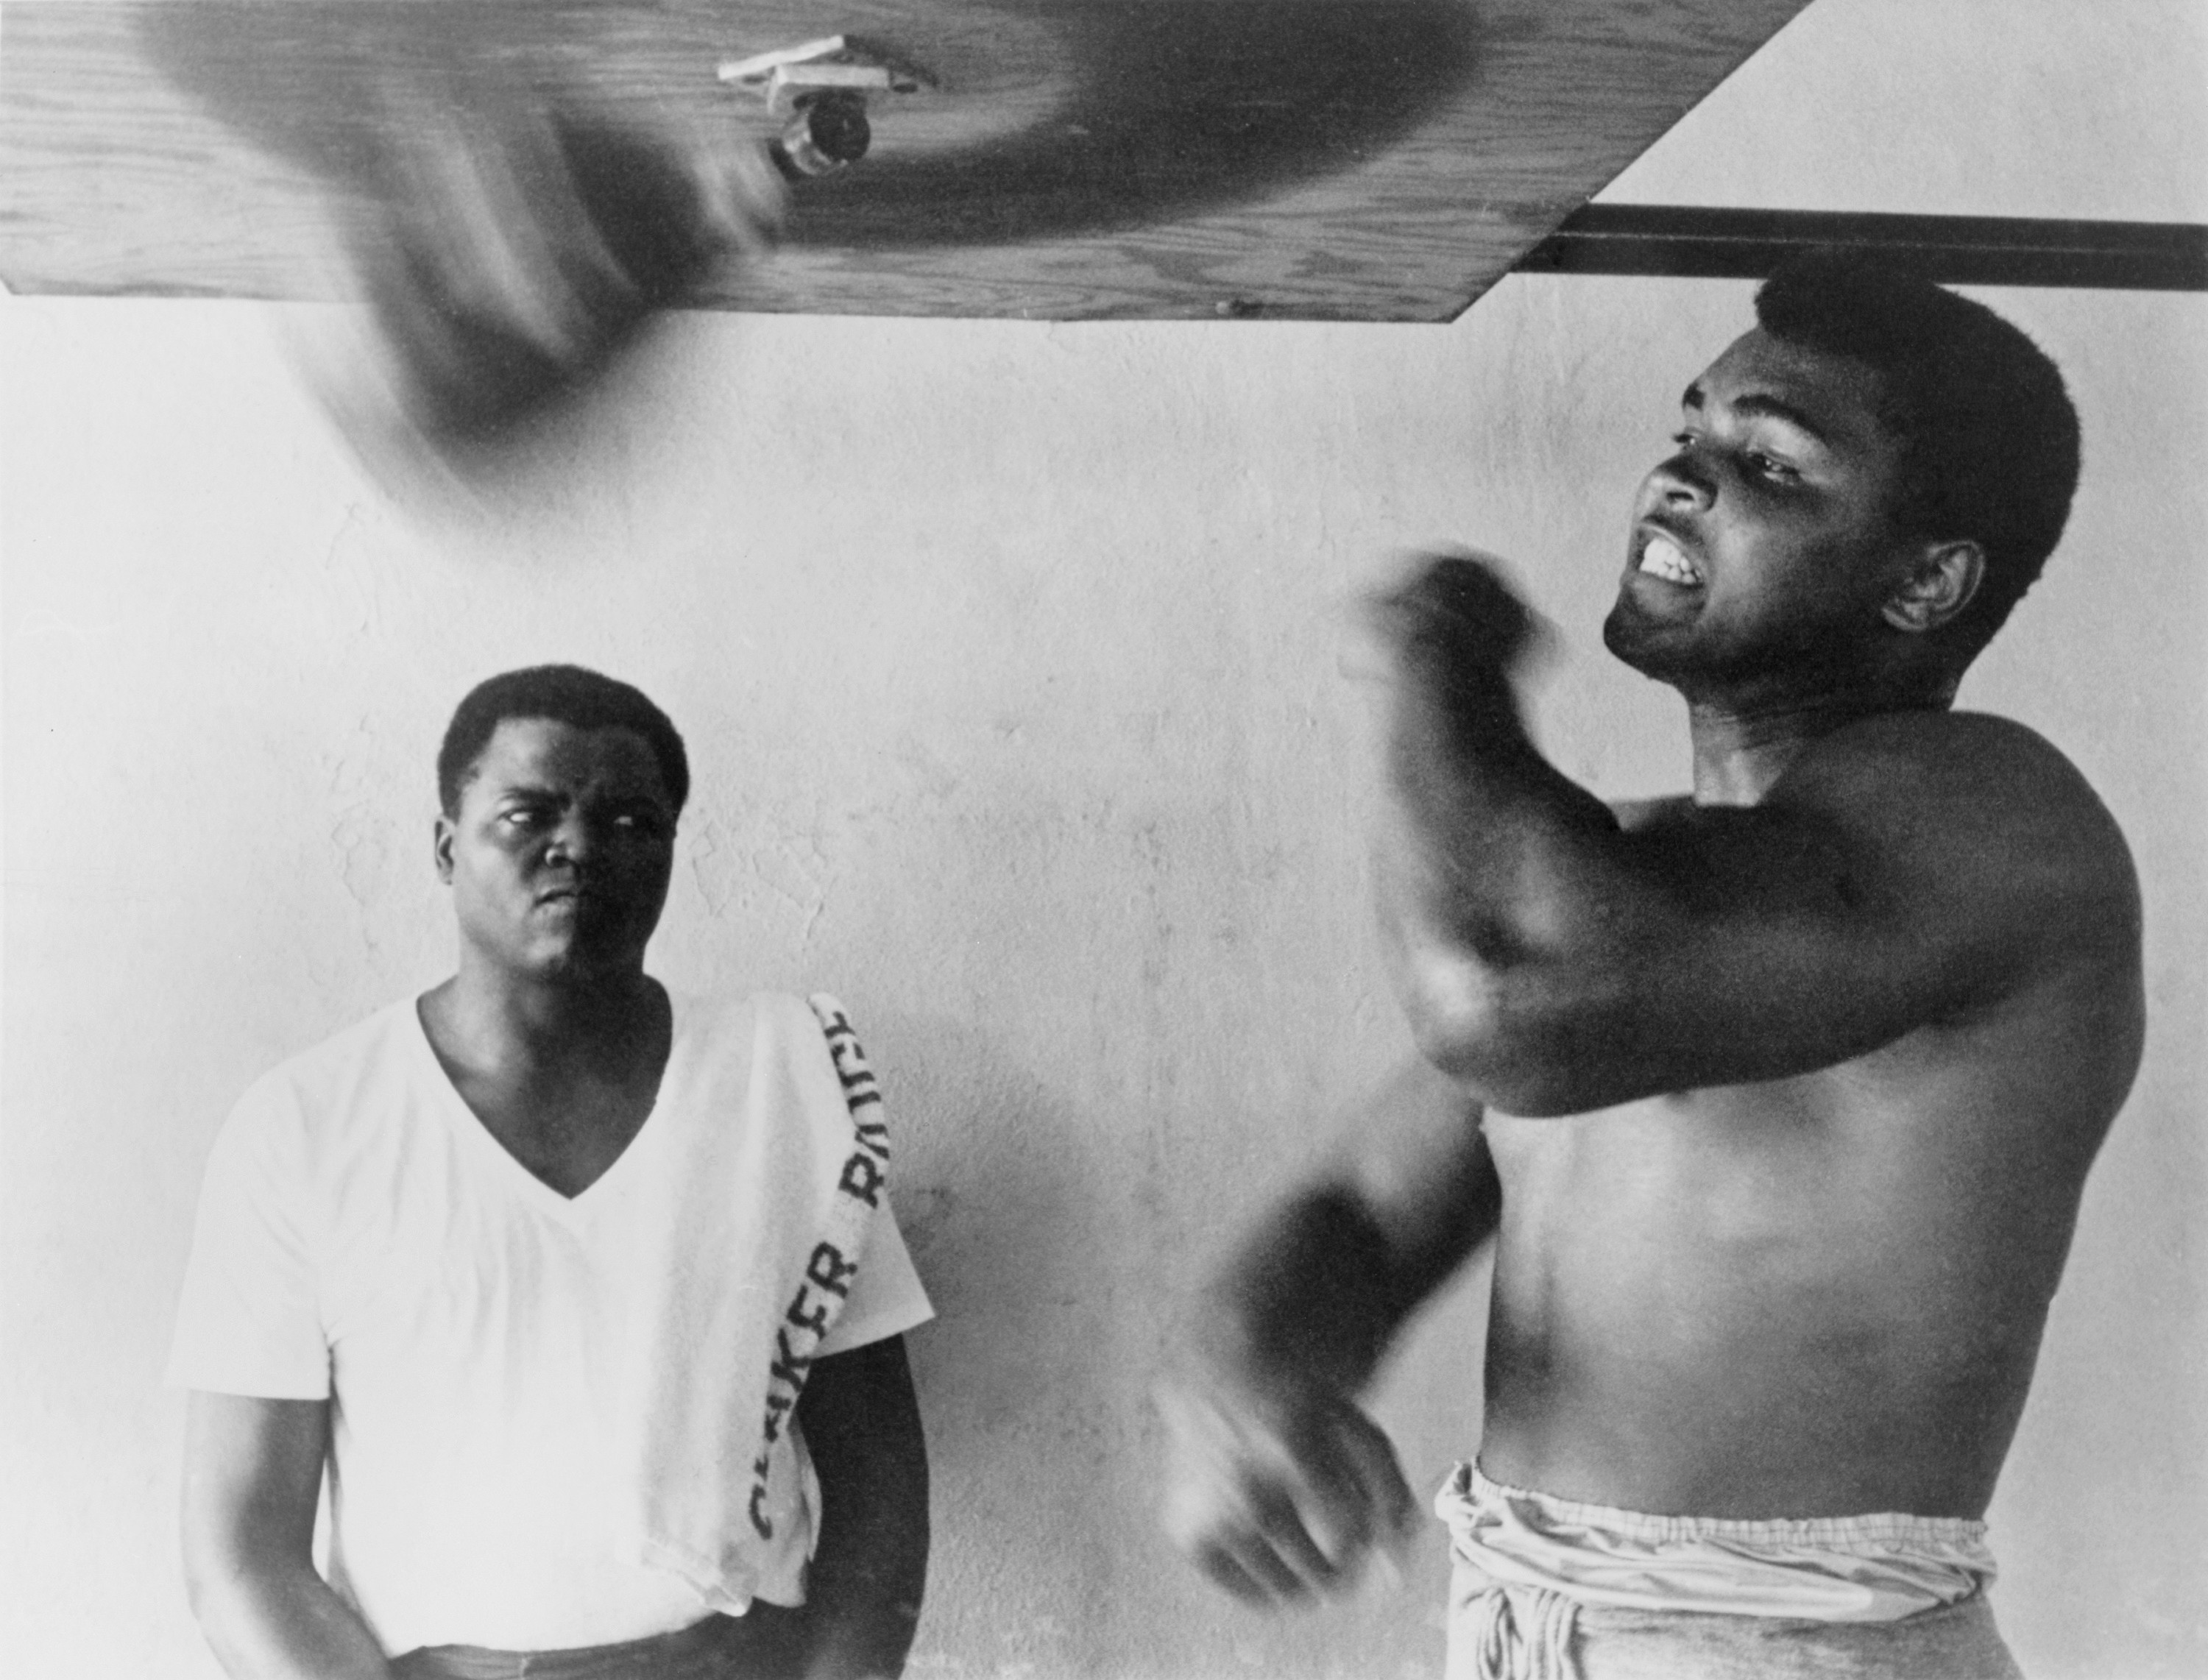 Muhammad Ali, works out on light bag in Miami, Florida. 1965., Image: 101845325, License: Rights-managed, Restrictions: For usage credit please use; Courtesy Everett Collection, Model Release: no, Credit line: Profimedia, Everett